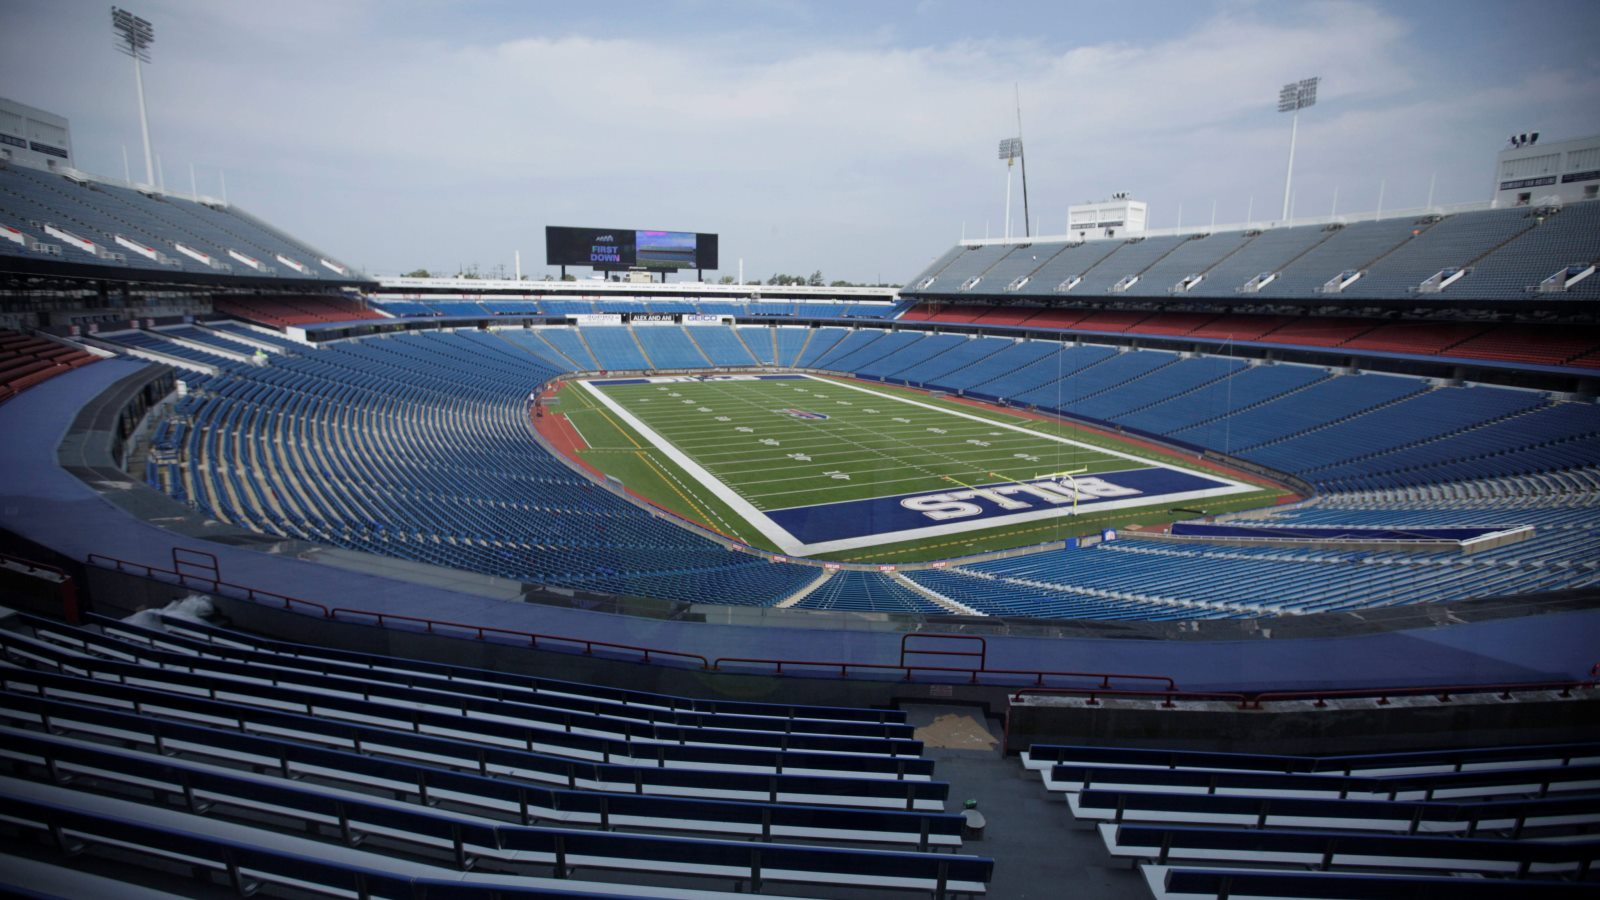 Erie County already owns the property surrounding the Bills stadium and existing practice facilities. (Derek Gee/Buffalo News)